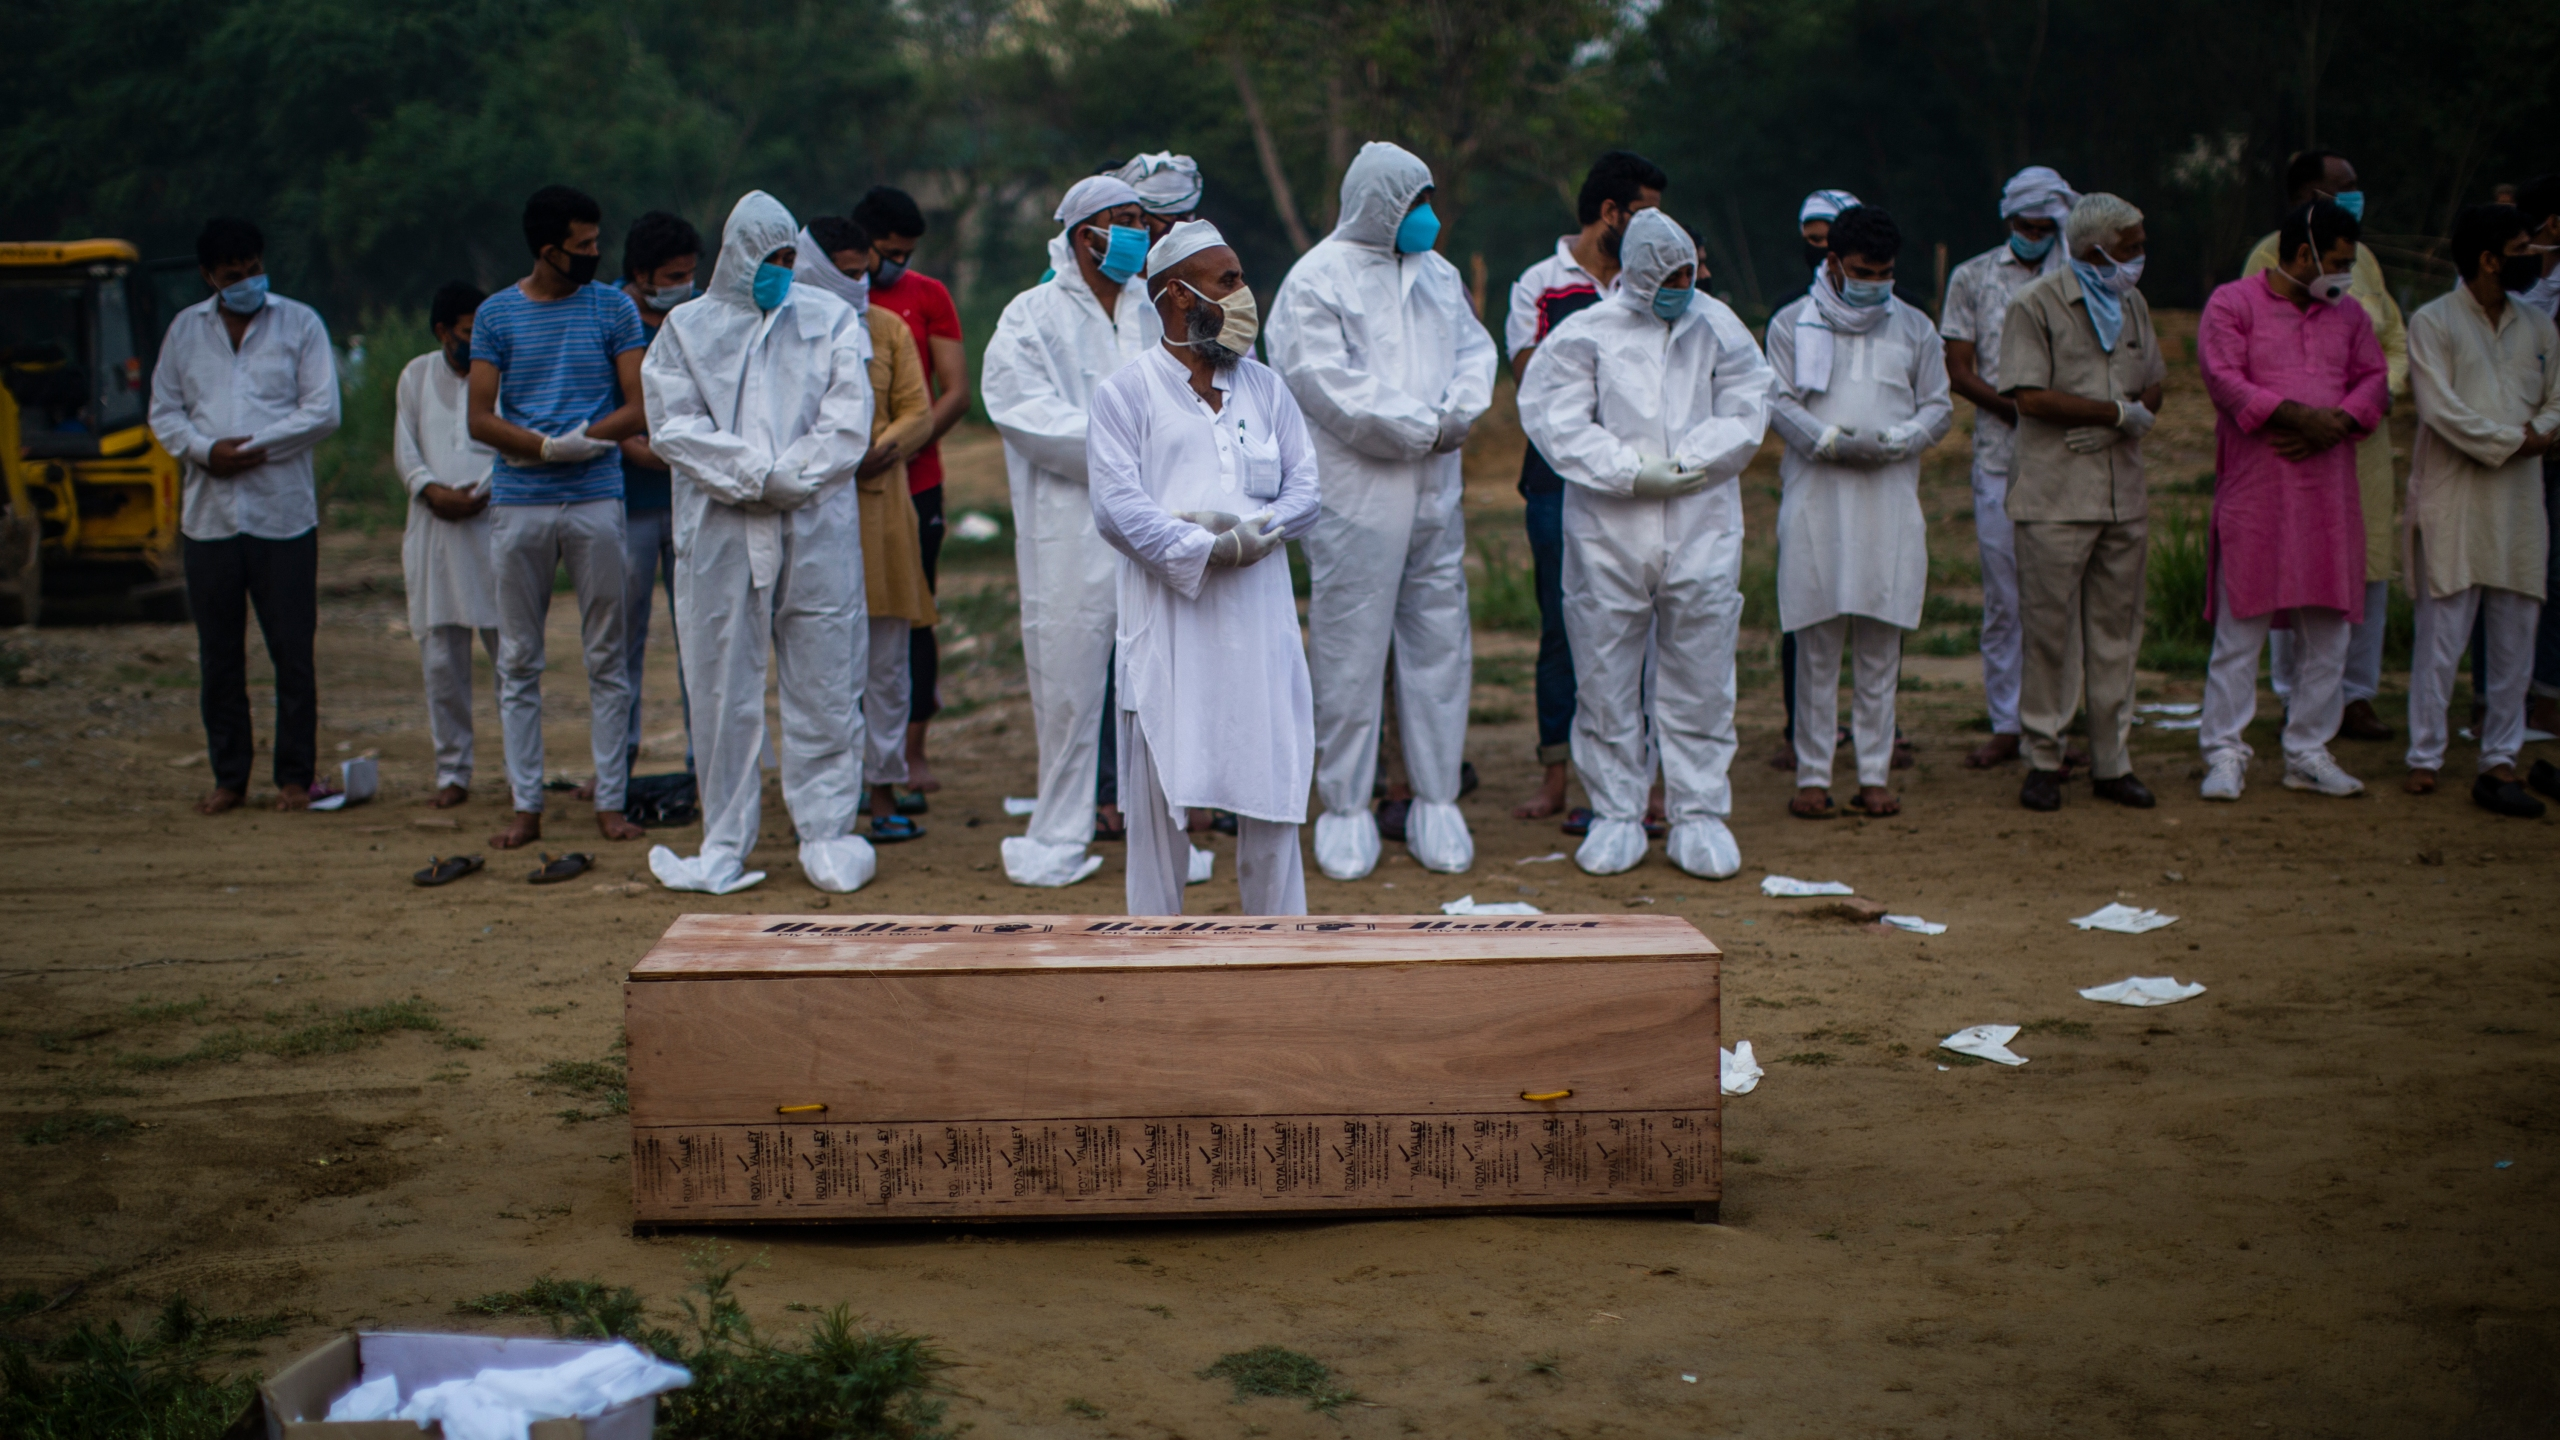 Relatives offer funeral prayers next to the coffin containing the body of a 35-year-old man who died from COVID-19 on July 17, 2020 in New Delhi, India. (Yawar Nazir/Getty Images)